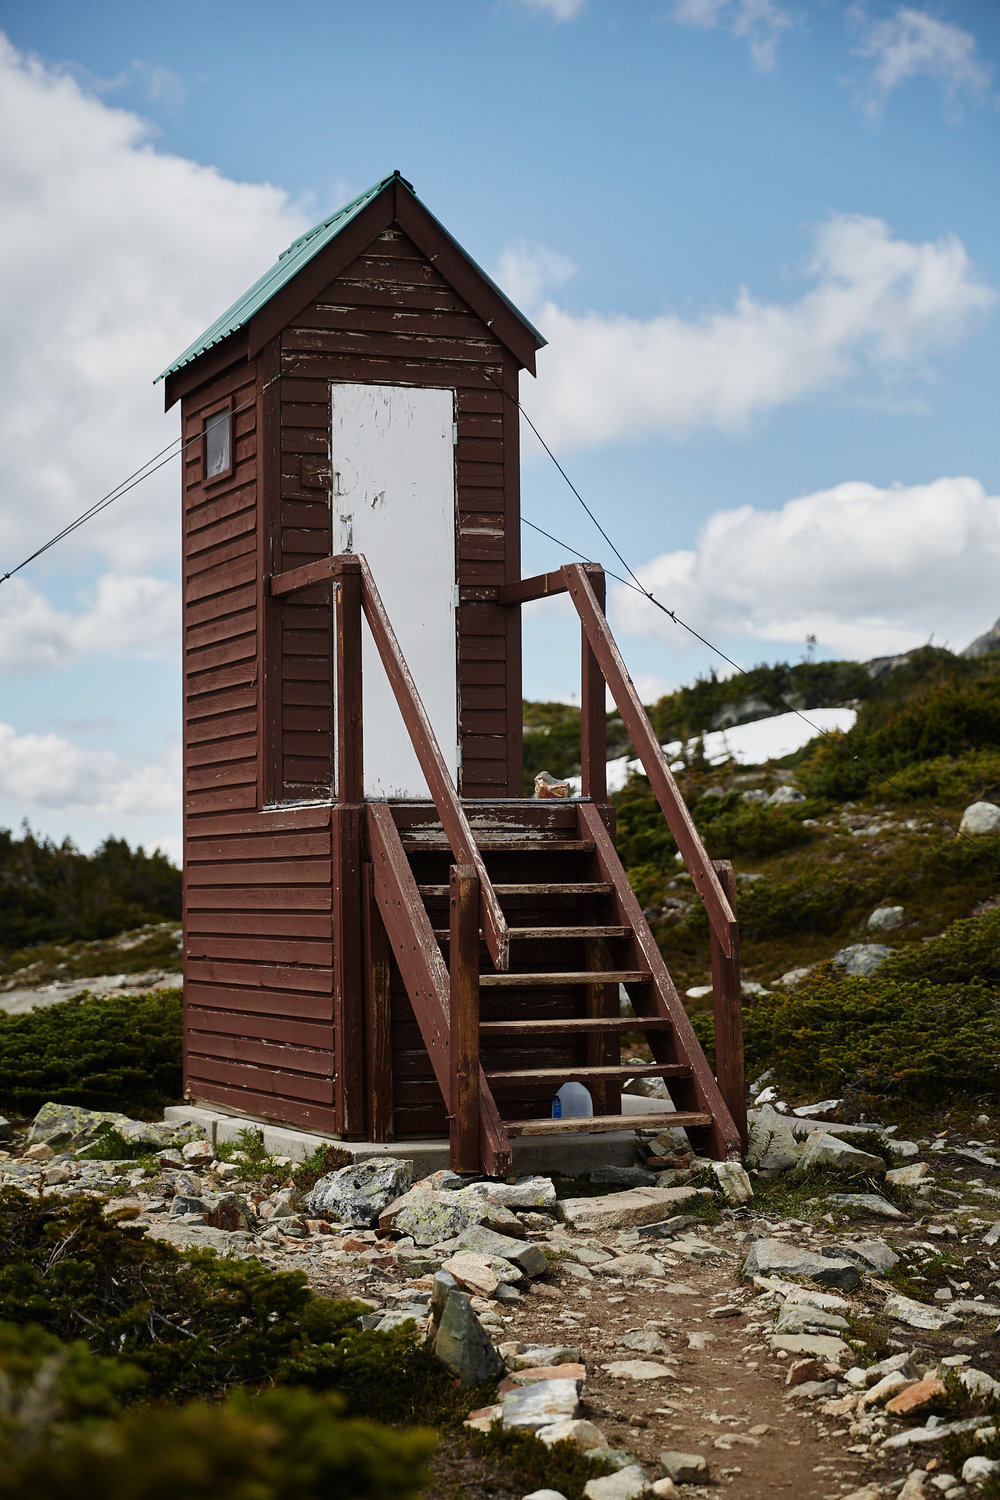 There is a nice outhouse close by the lake and hut.